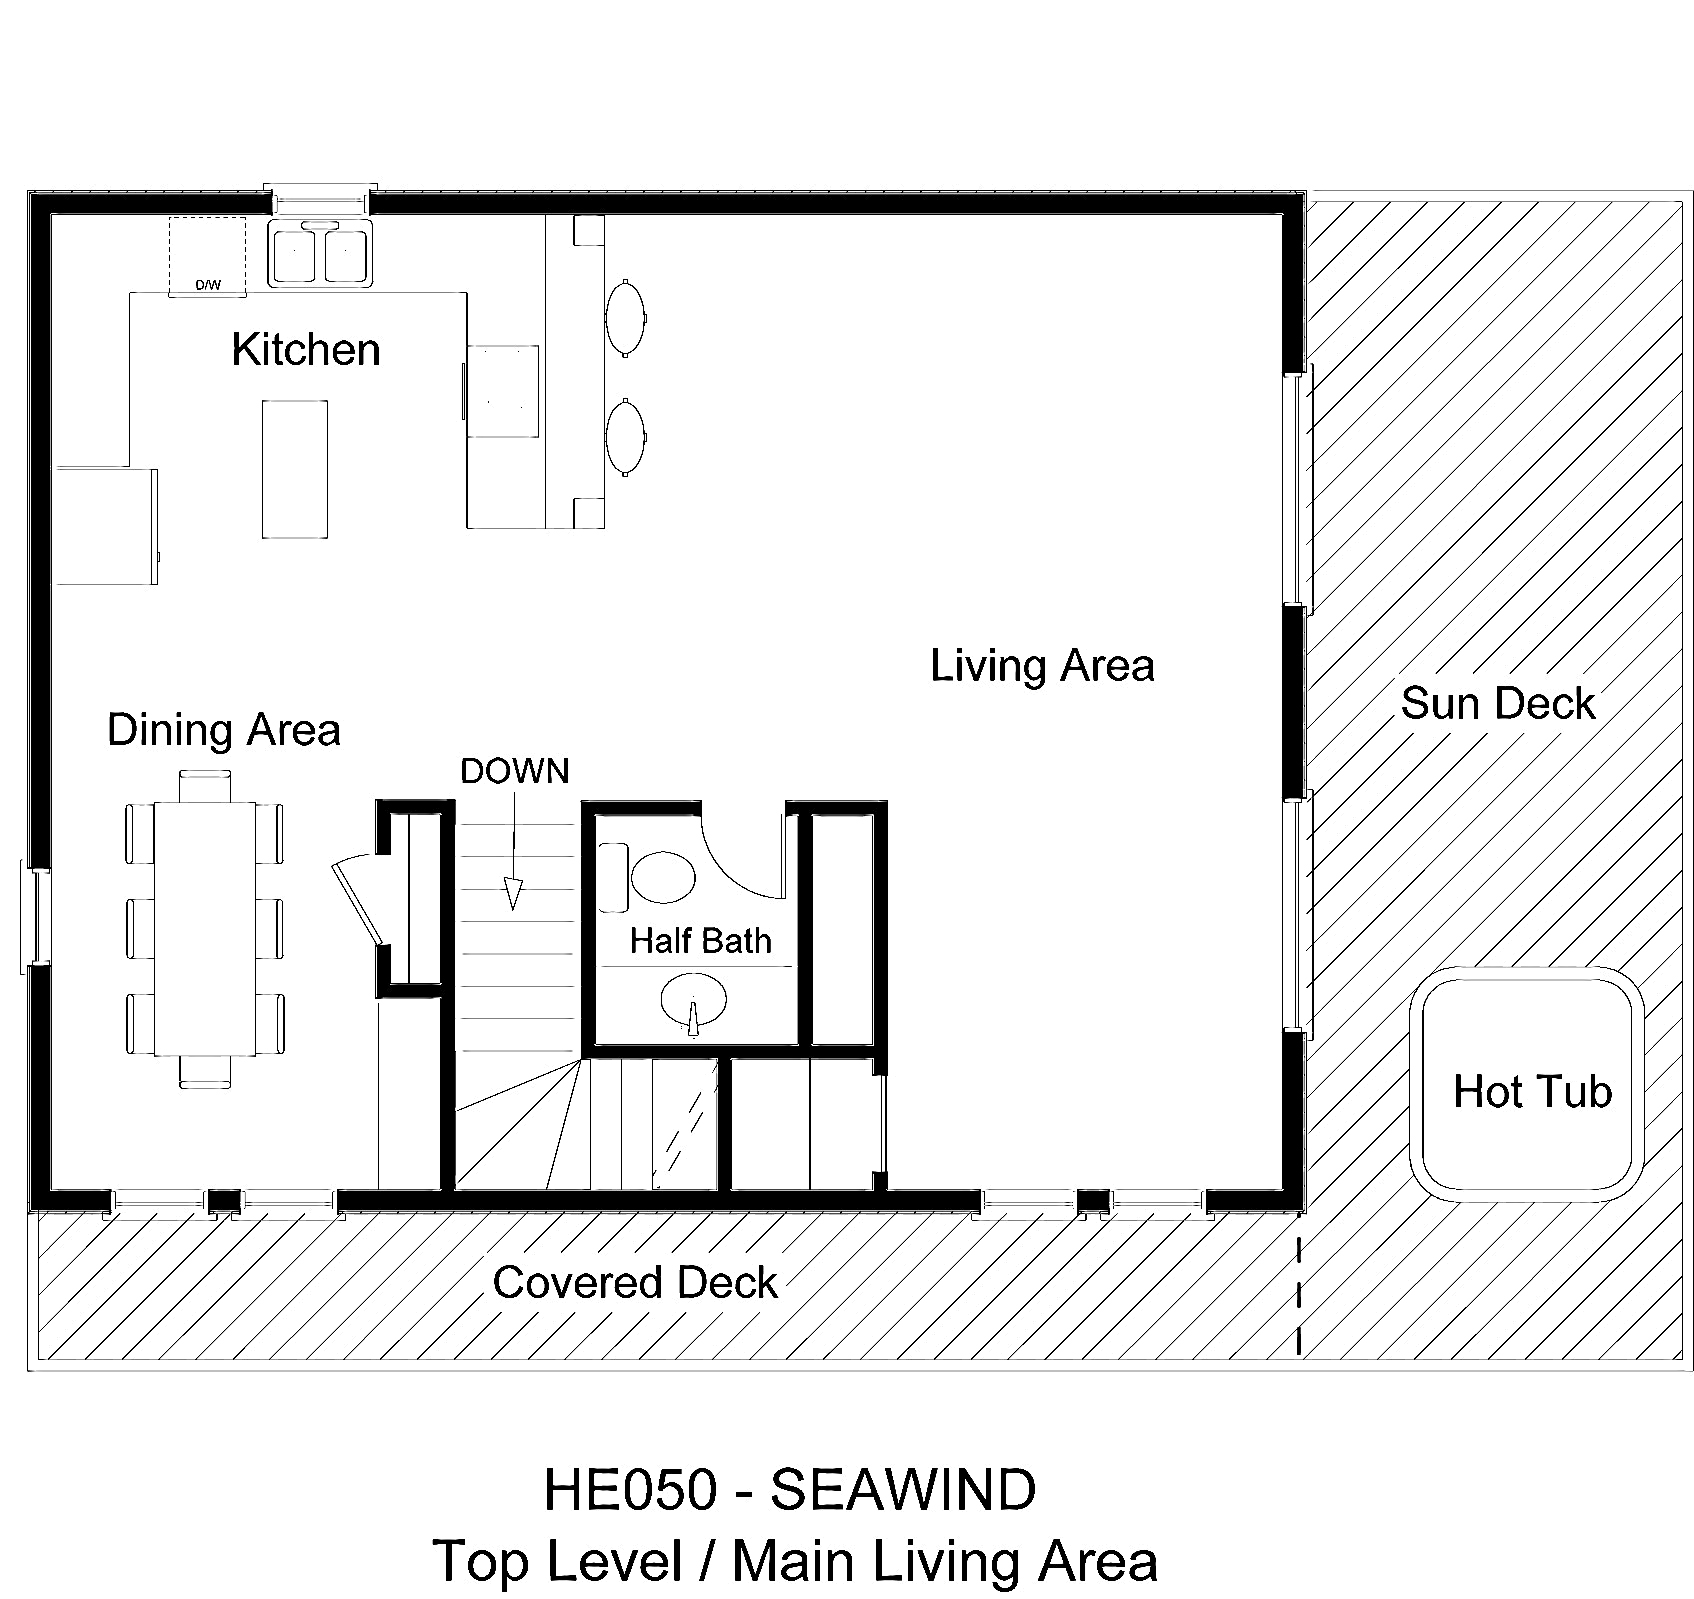 HE050 Seawind - Floorplan Level 2